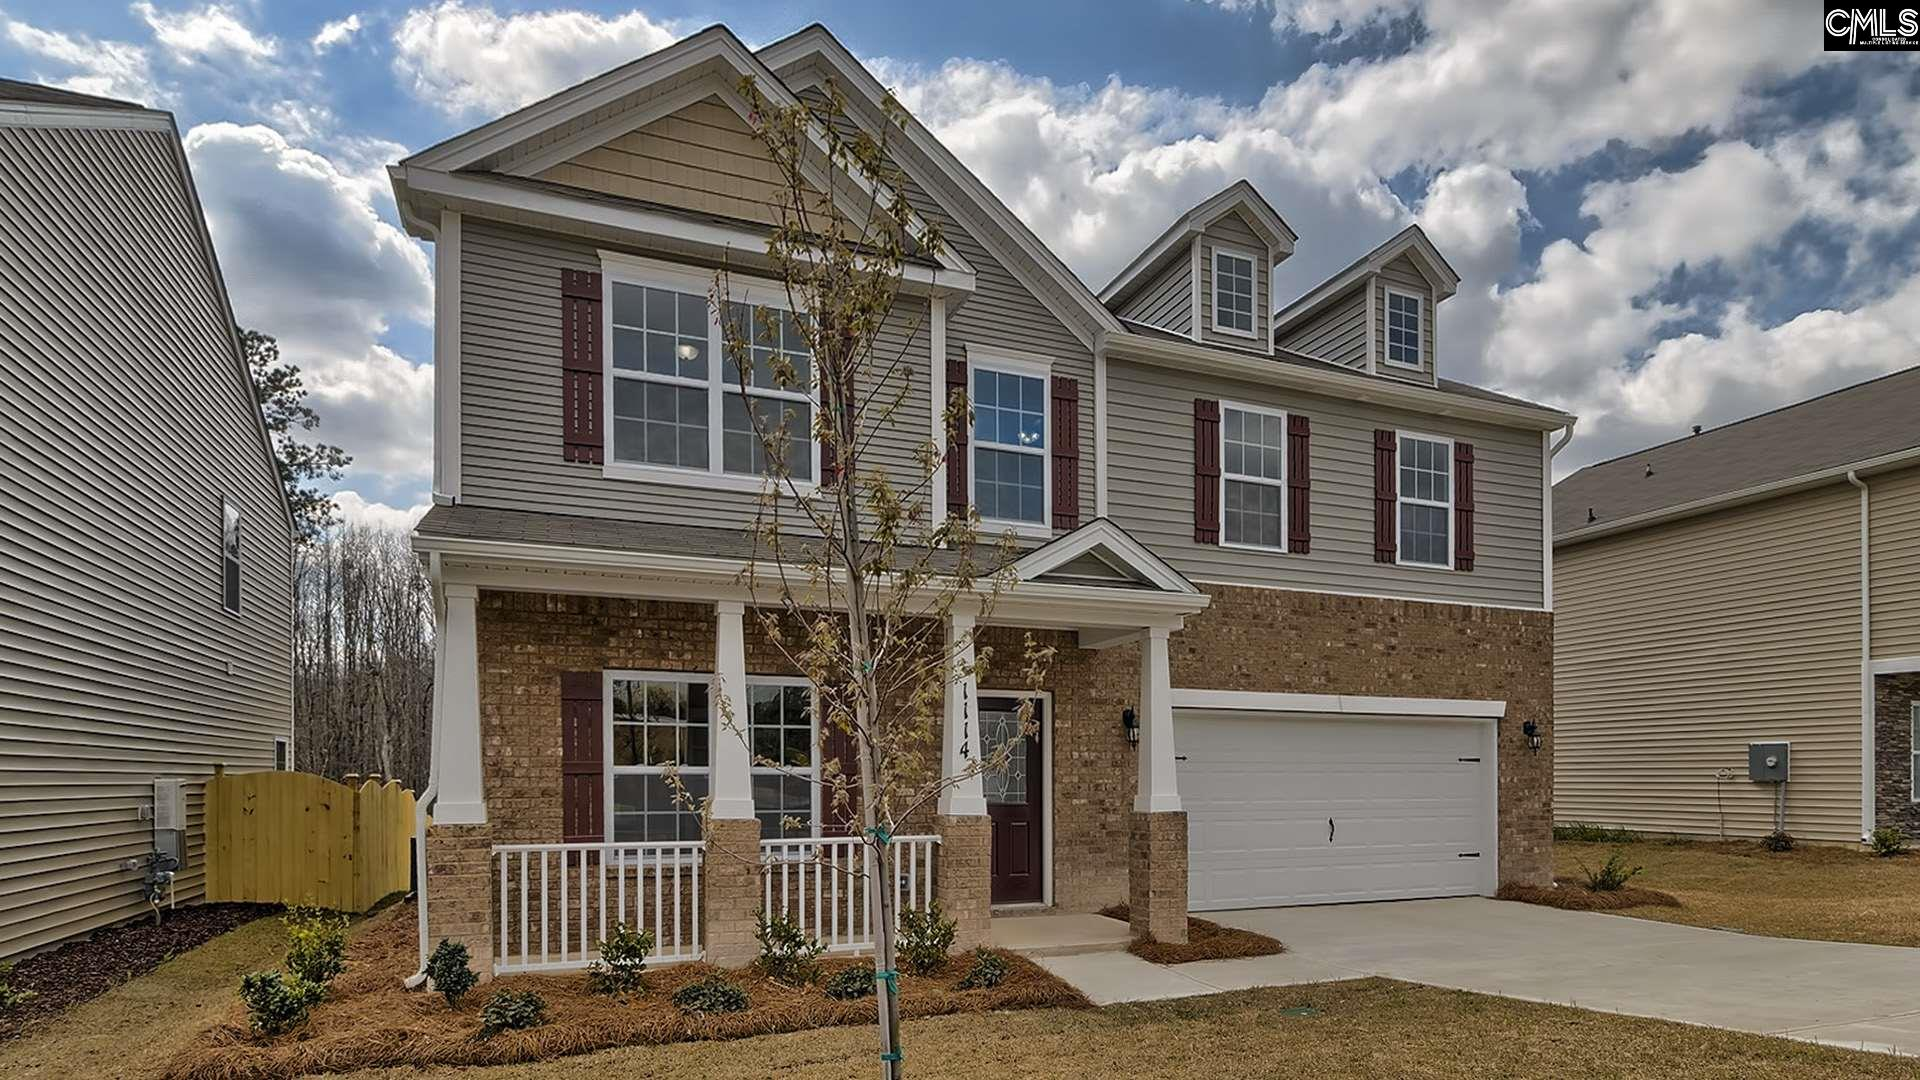 325 Coatbridge Blythewood, SC 29016